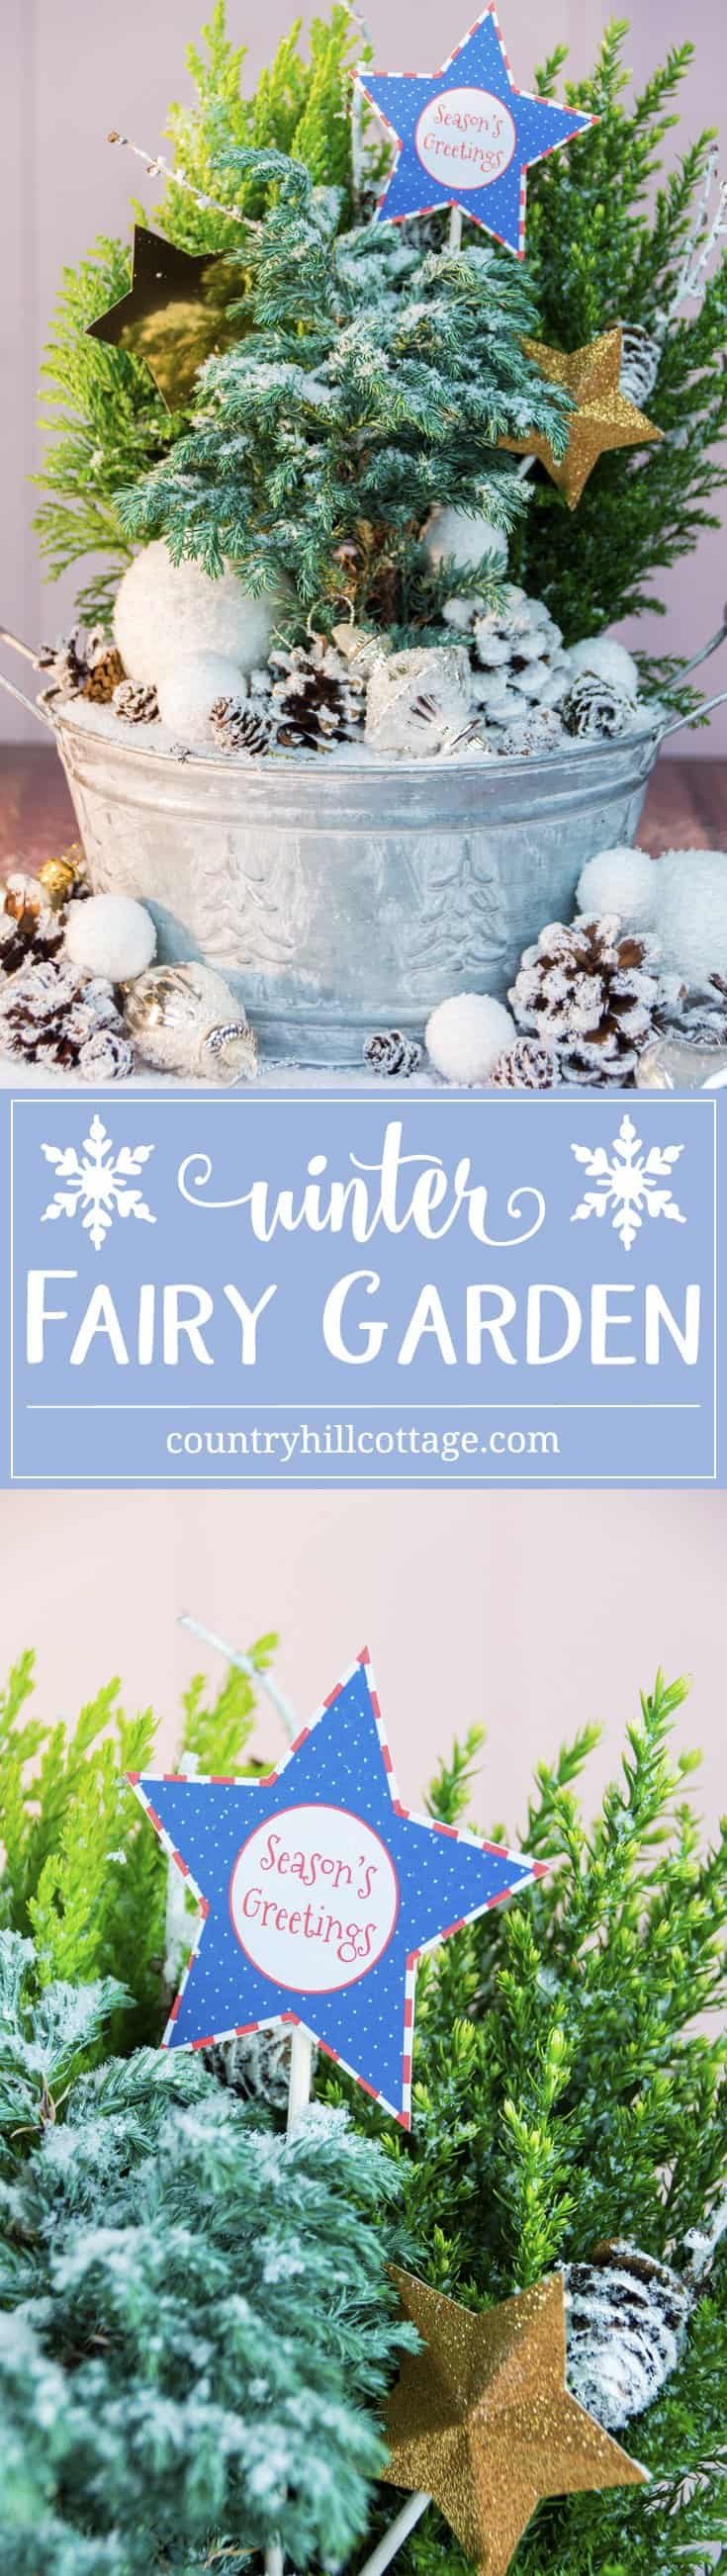 Learn to create a sparkly winter fairy garden with cute evergreen mini shrubs and snowy DIY decorations. This plant arrangement makes a lovely holiday gift! #flowerarranging #Christmas | countryhillcottage.com